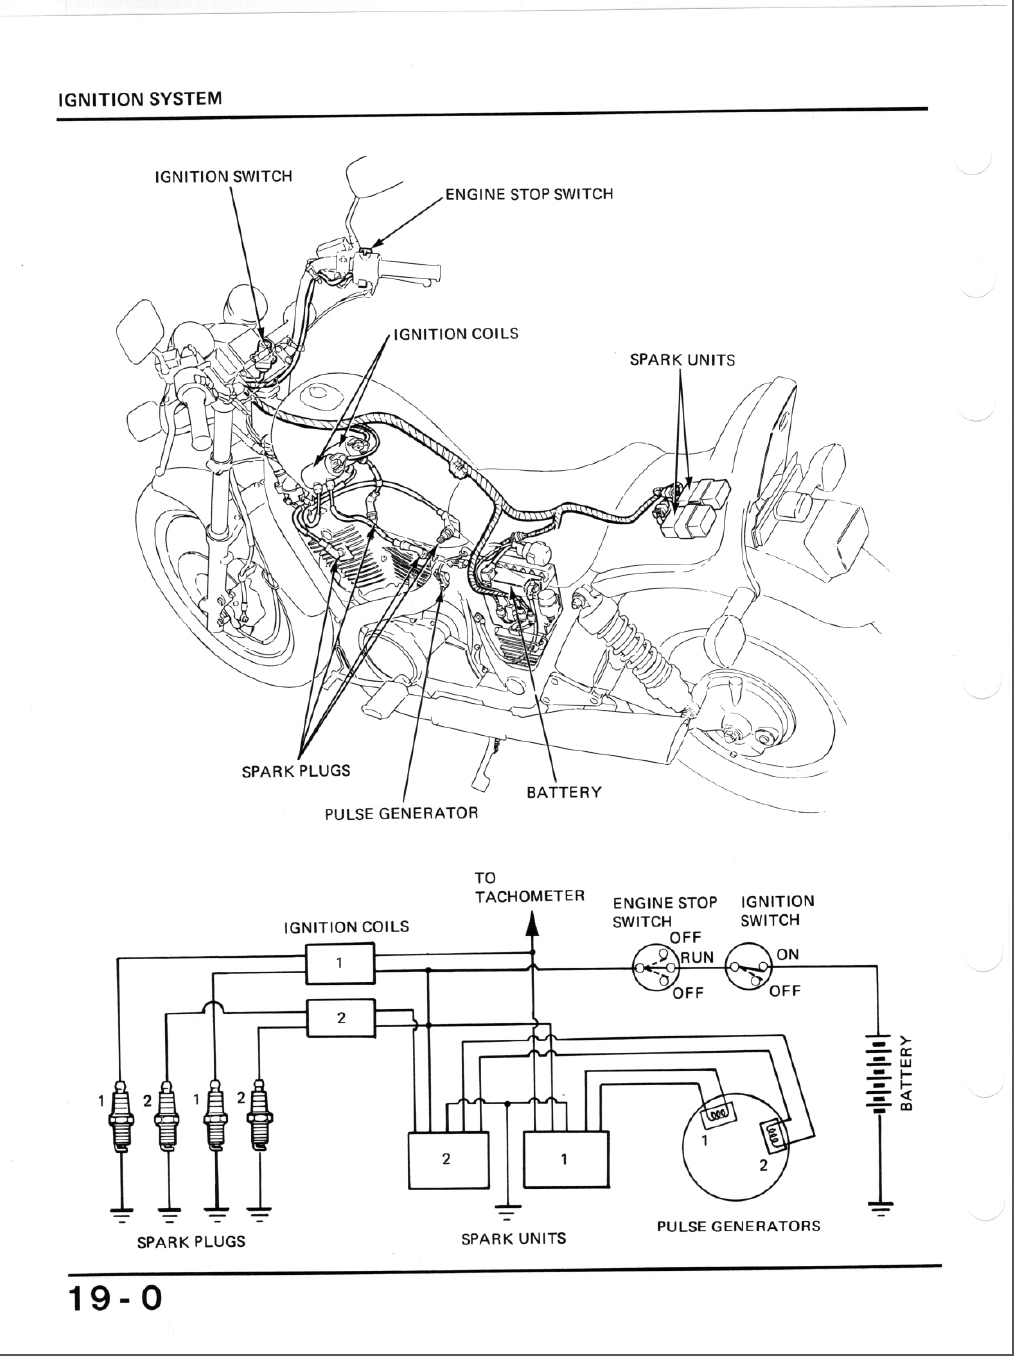 File: 1984 Honda Shadow Wiring Diagram